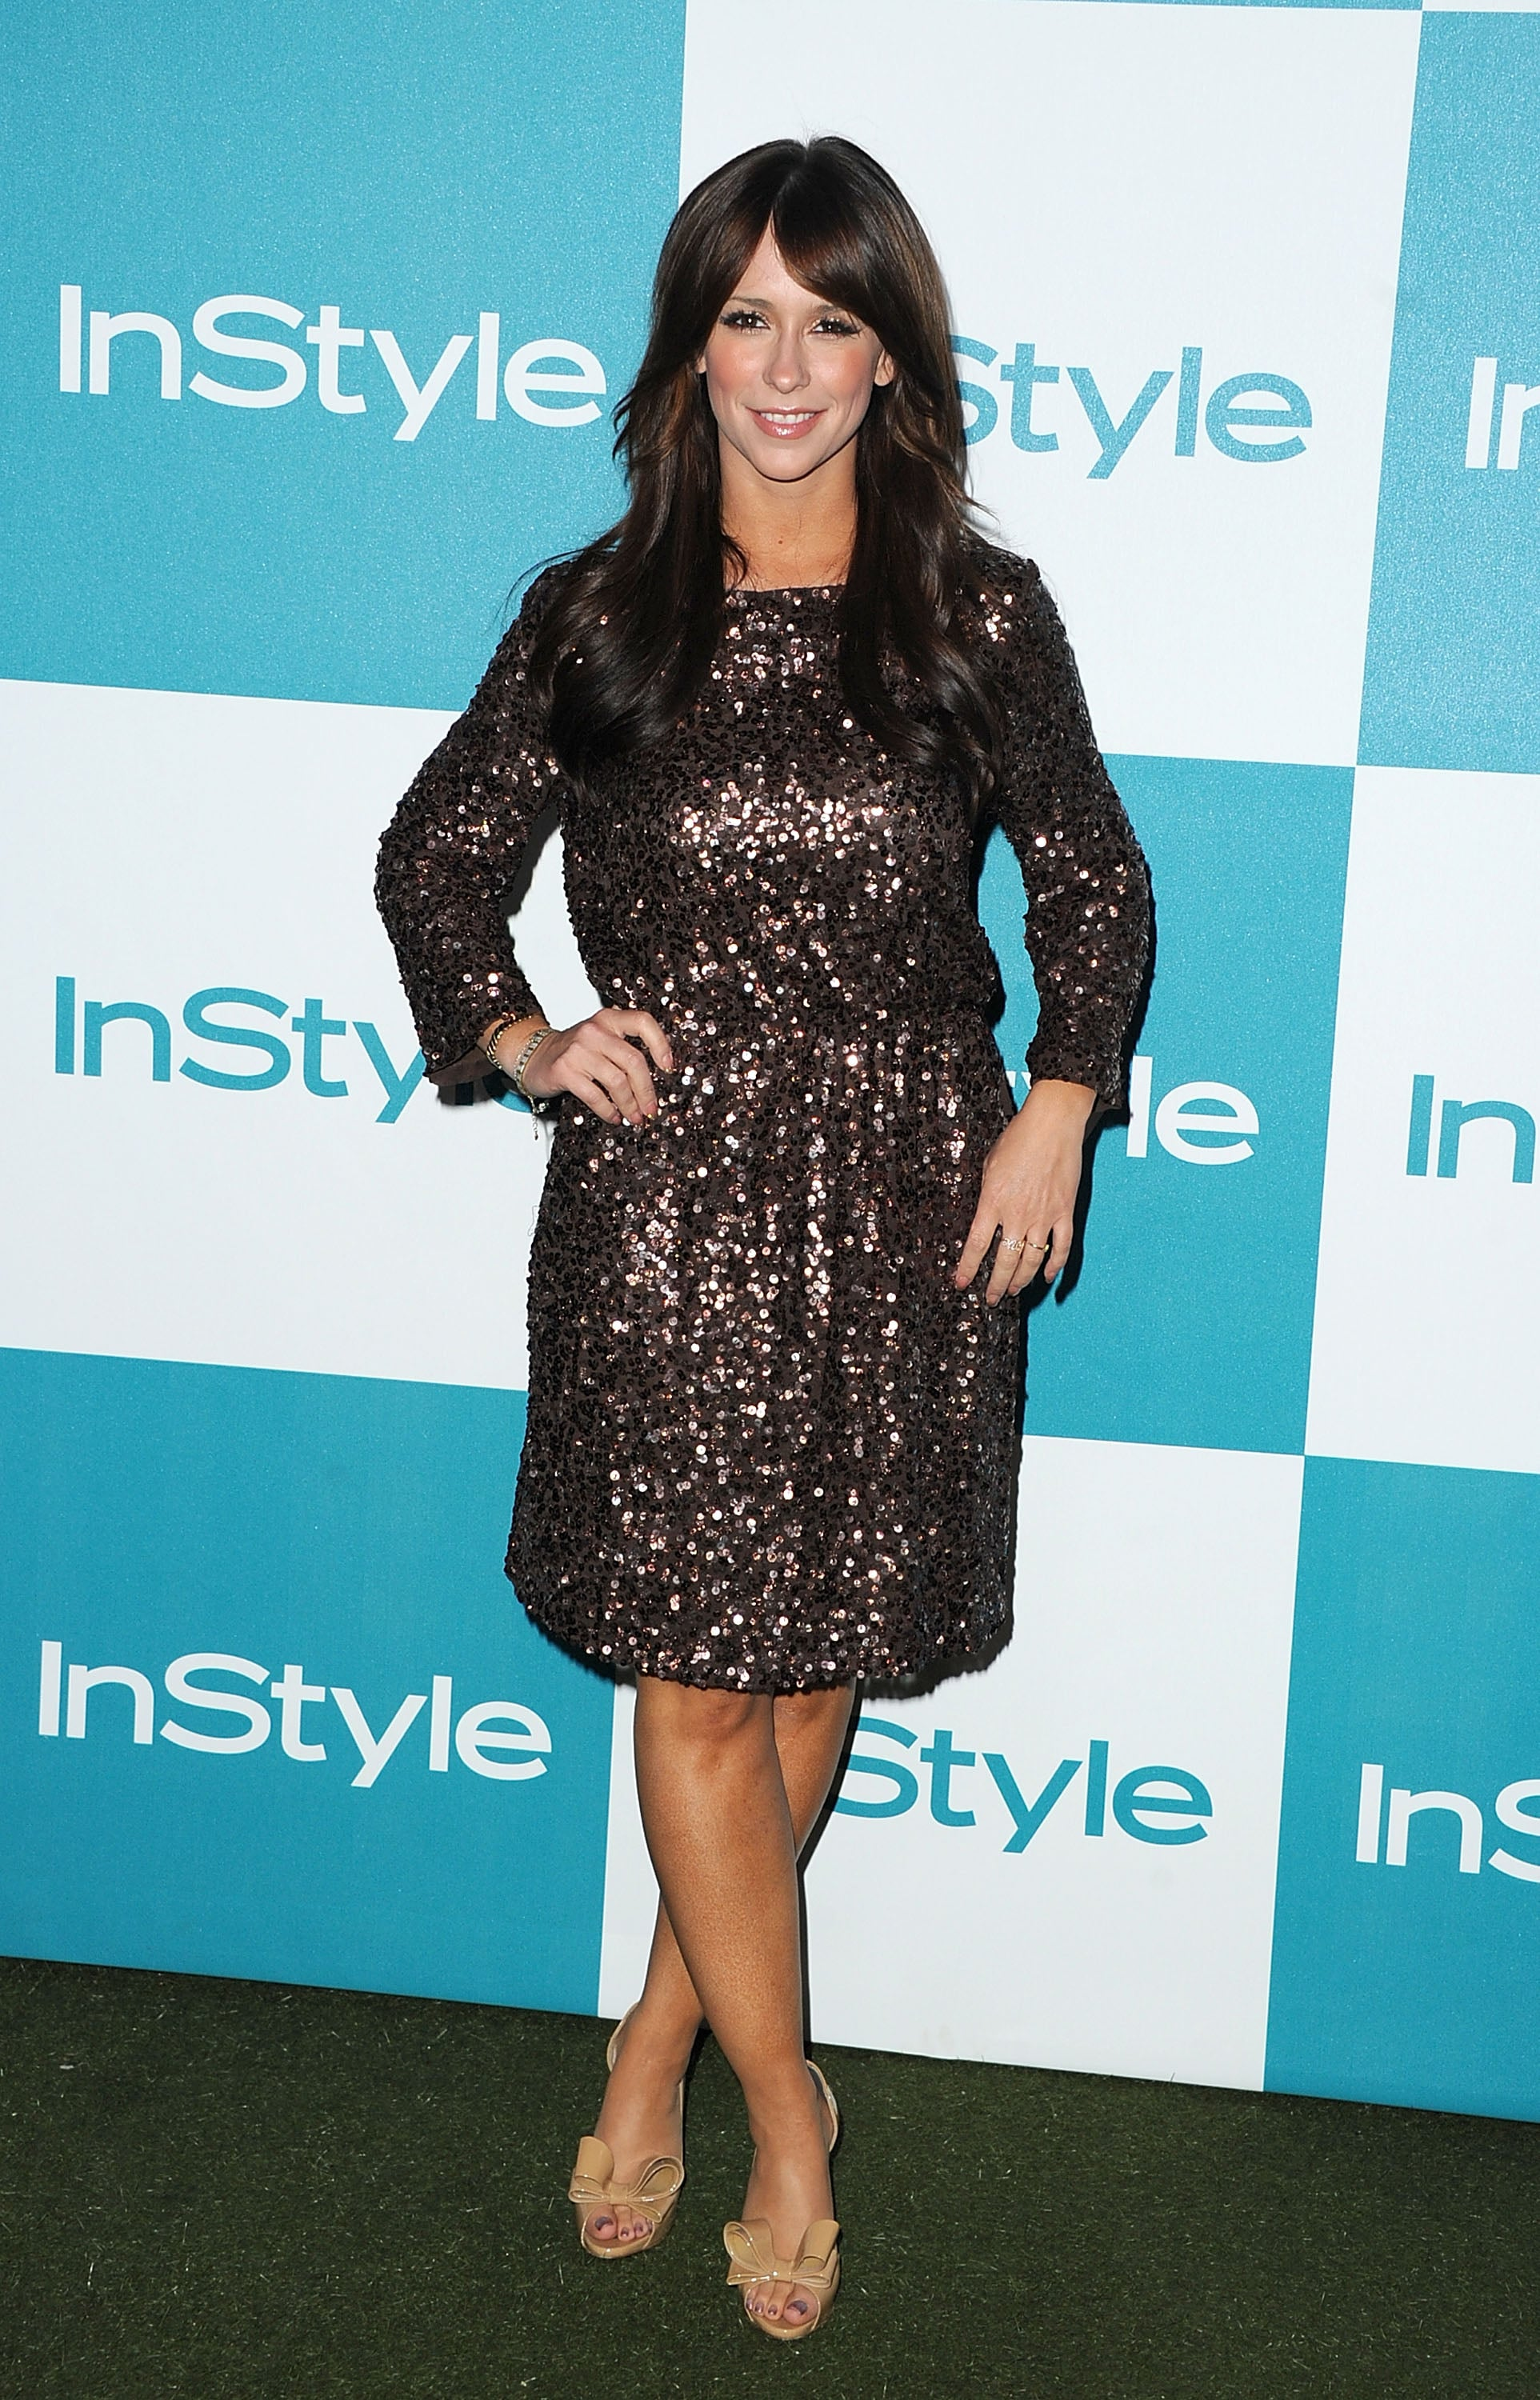 Jennifer Love Hewitt parties with InStyle.